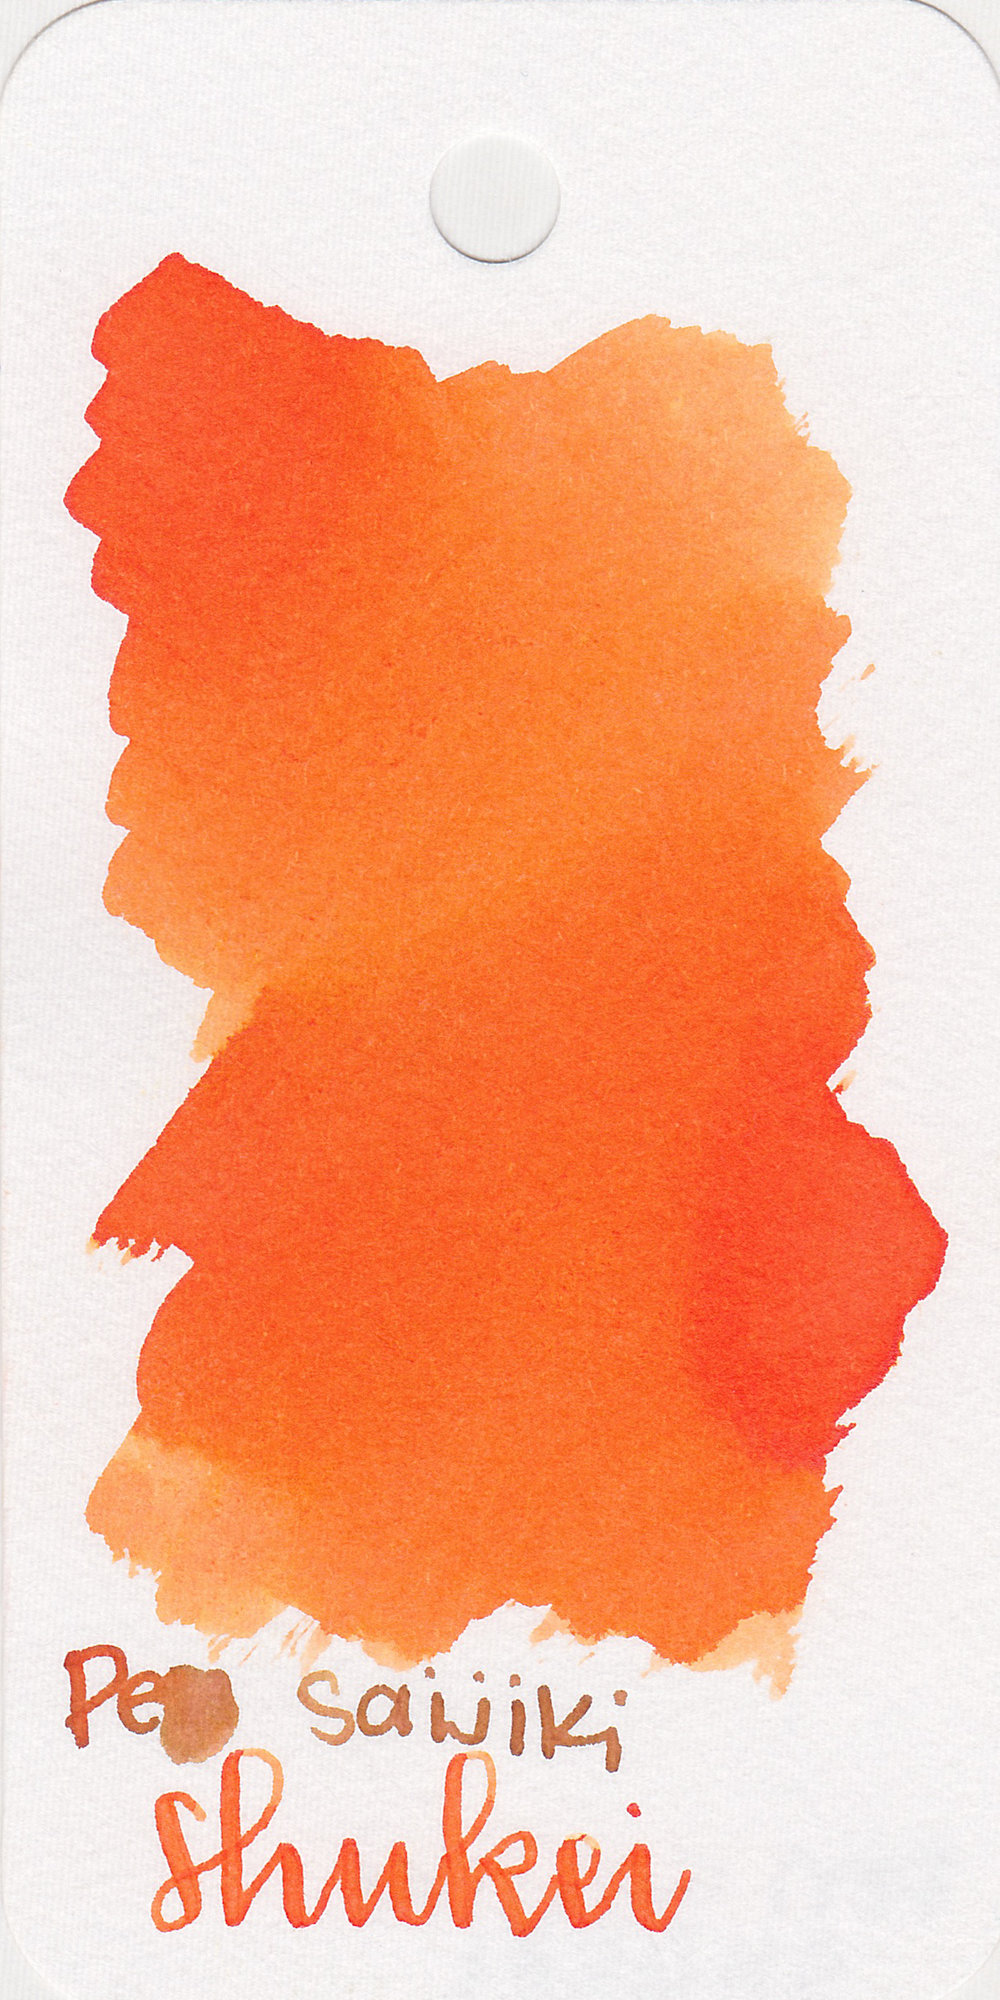 The color: - Shukei is a medium orange. Sometimes it looks true orange, and sometimes it leans a bit coral.